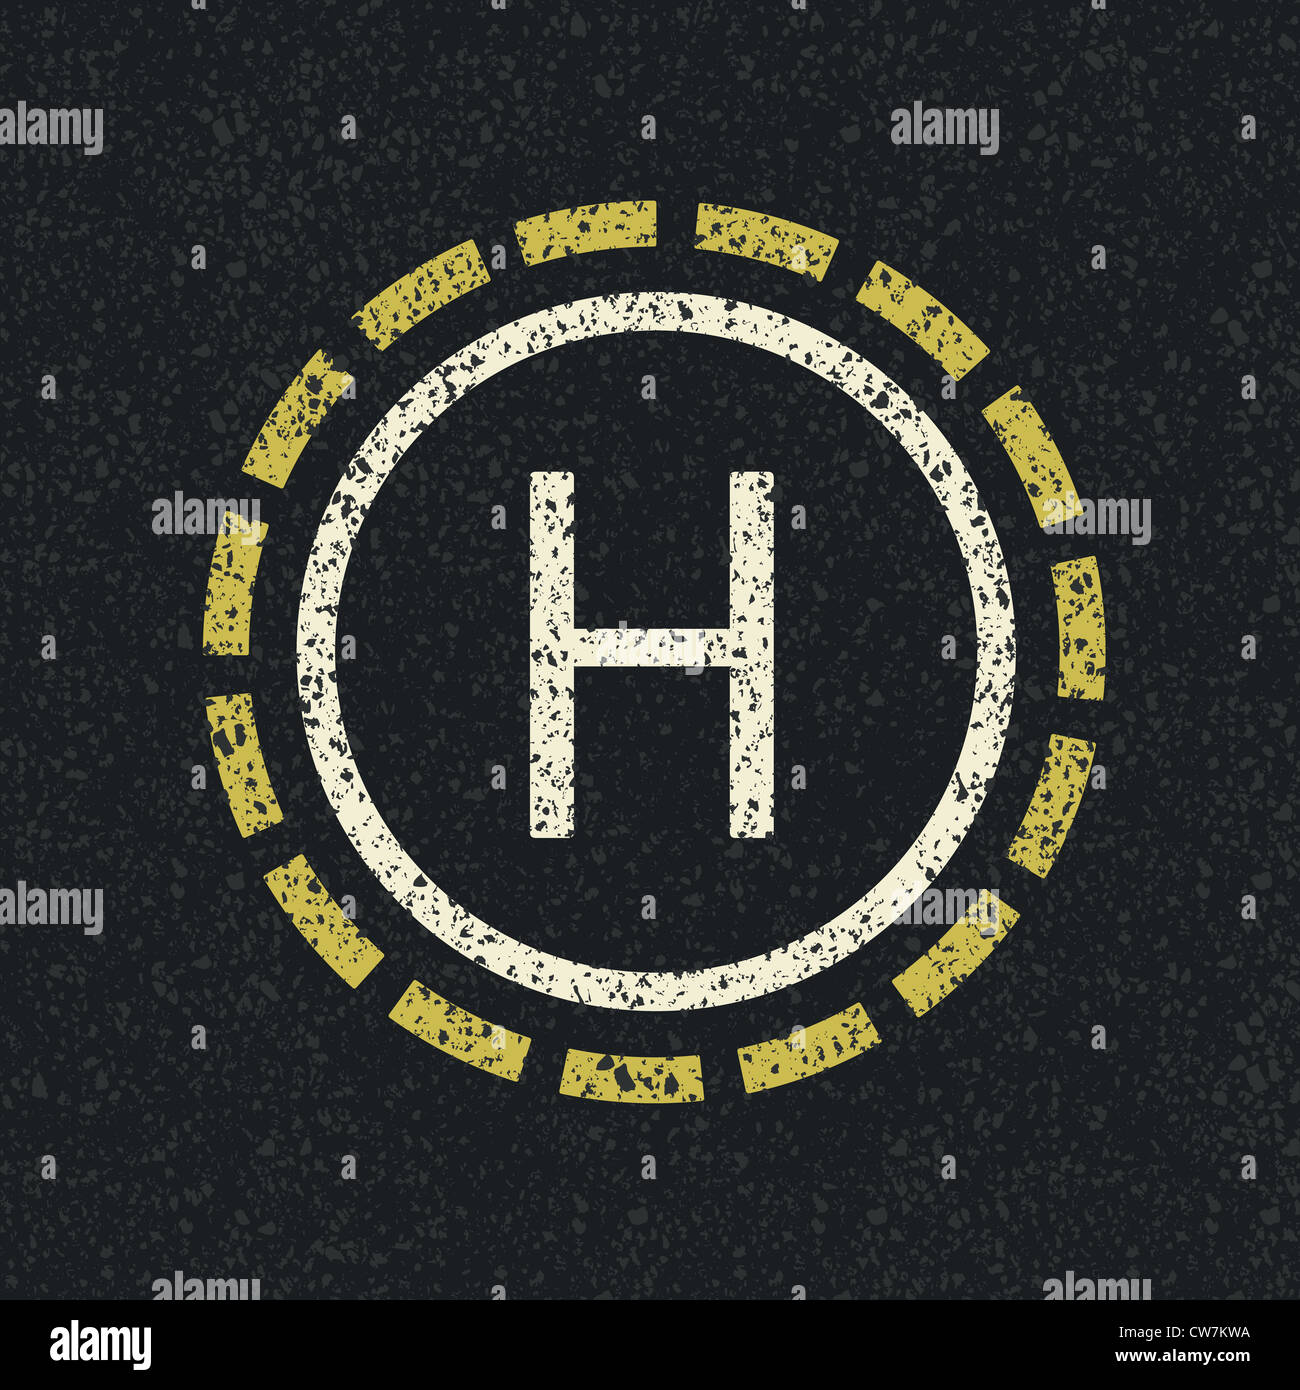 Helicopter landing pad - Stock Image